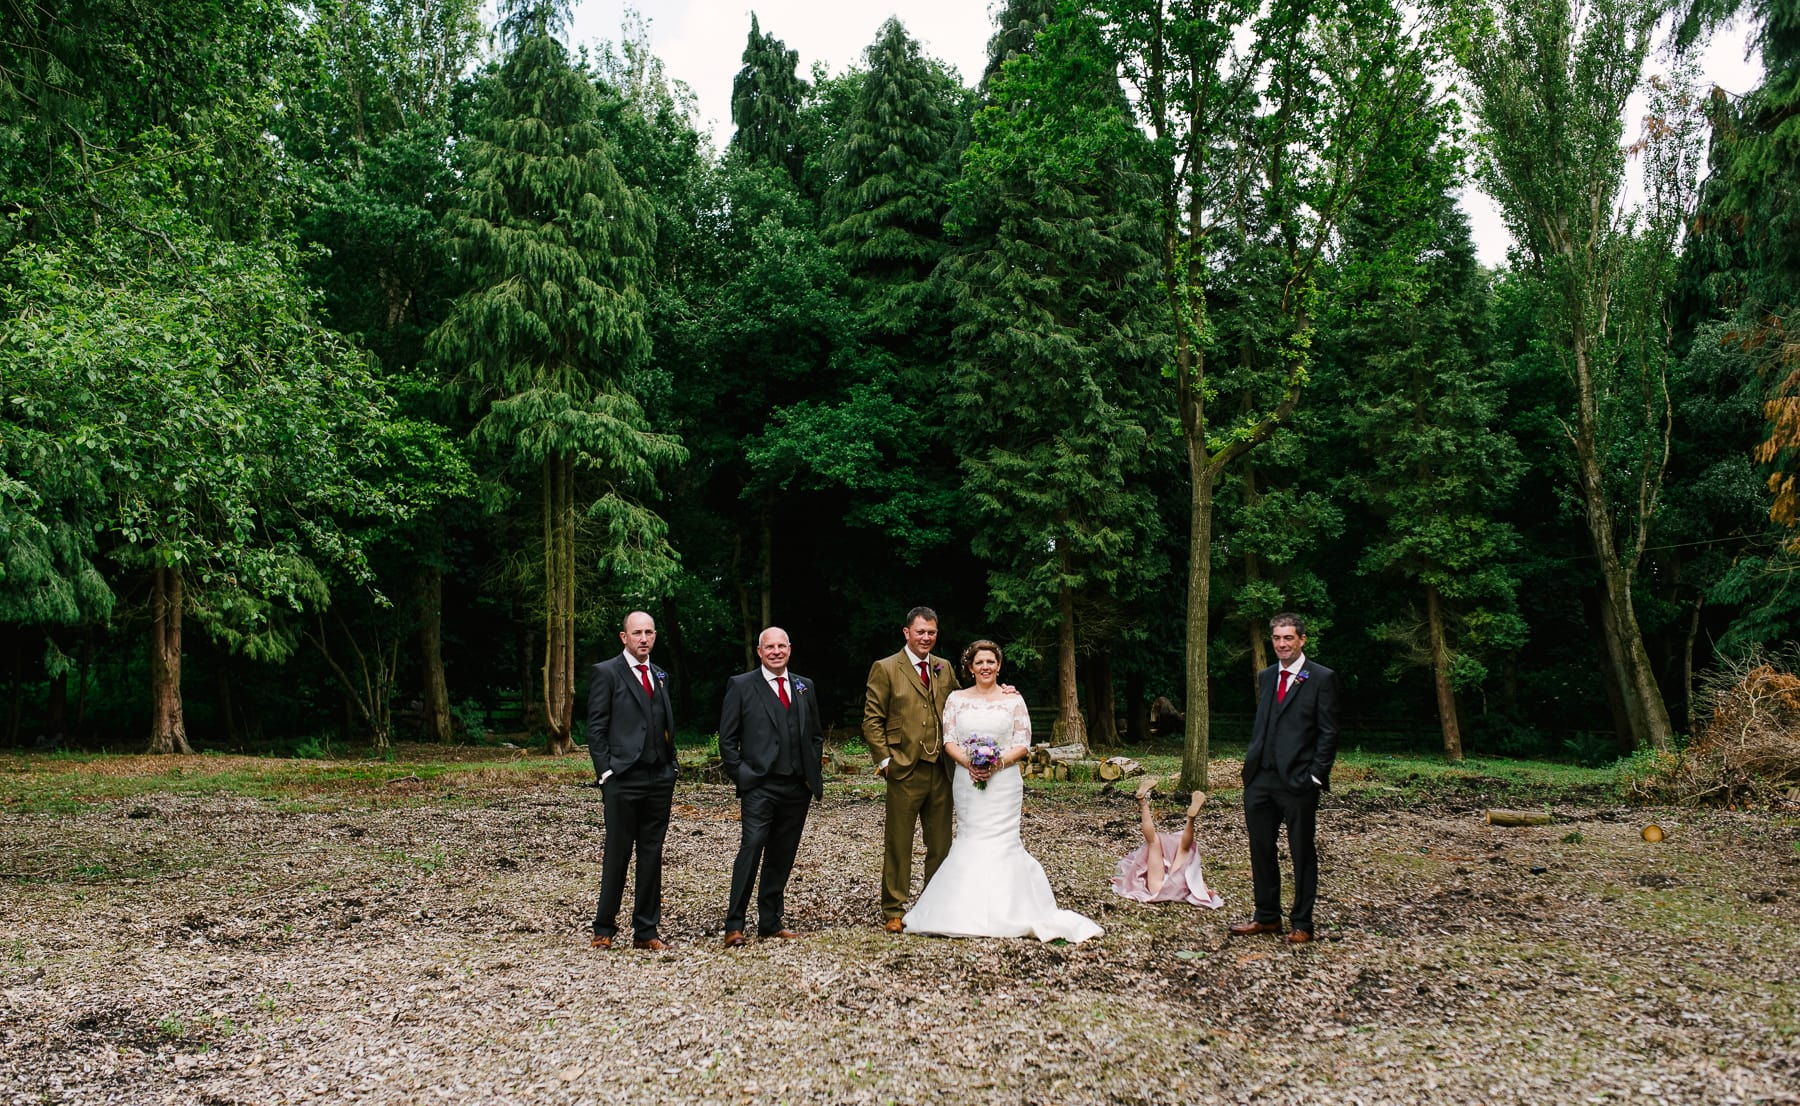 Sarah and Jason's Fun and Fabulous Summer Wedding at Nuthurst Grange